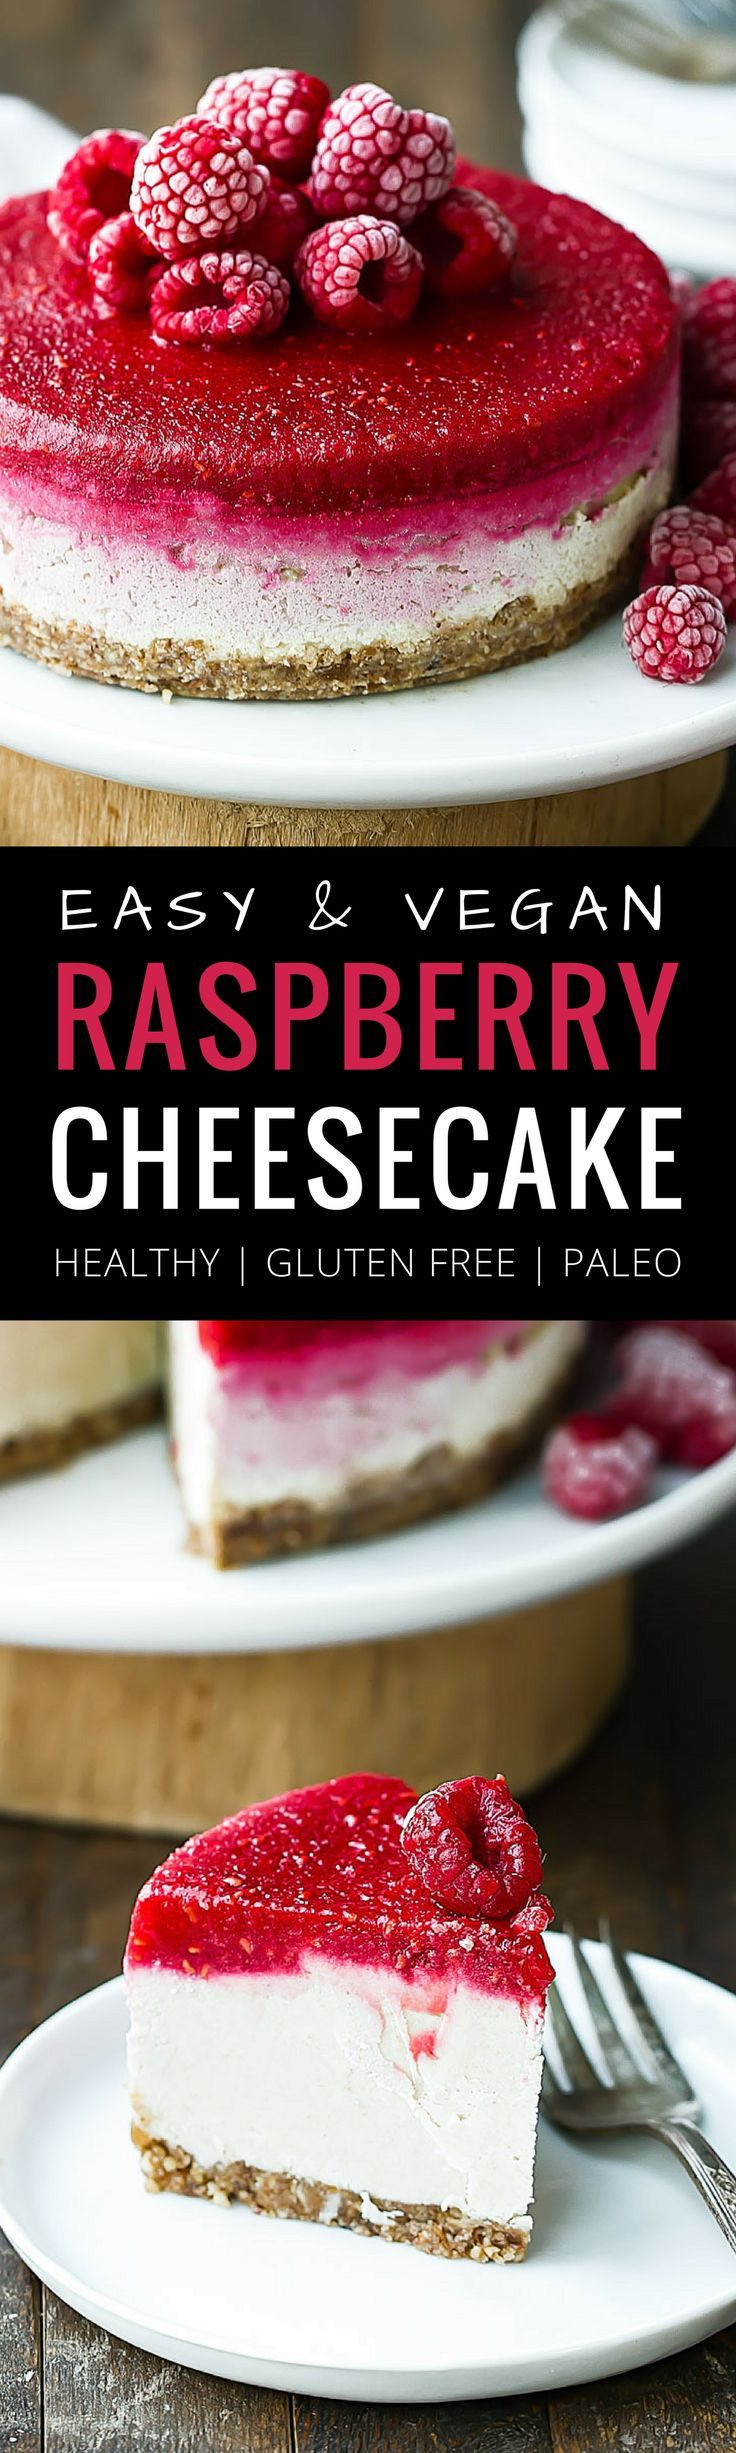 Easy Vegan Raspberry Cheesecake. Raw cheesecake recipe. No bake cashew cheesecake. Best gluten free vegan cheesecake